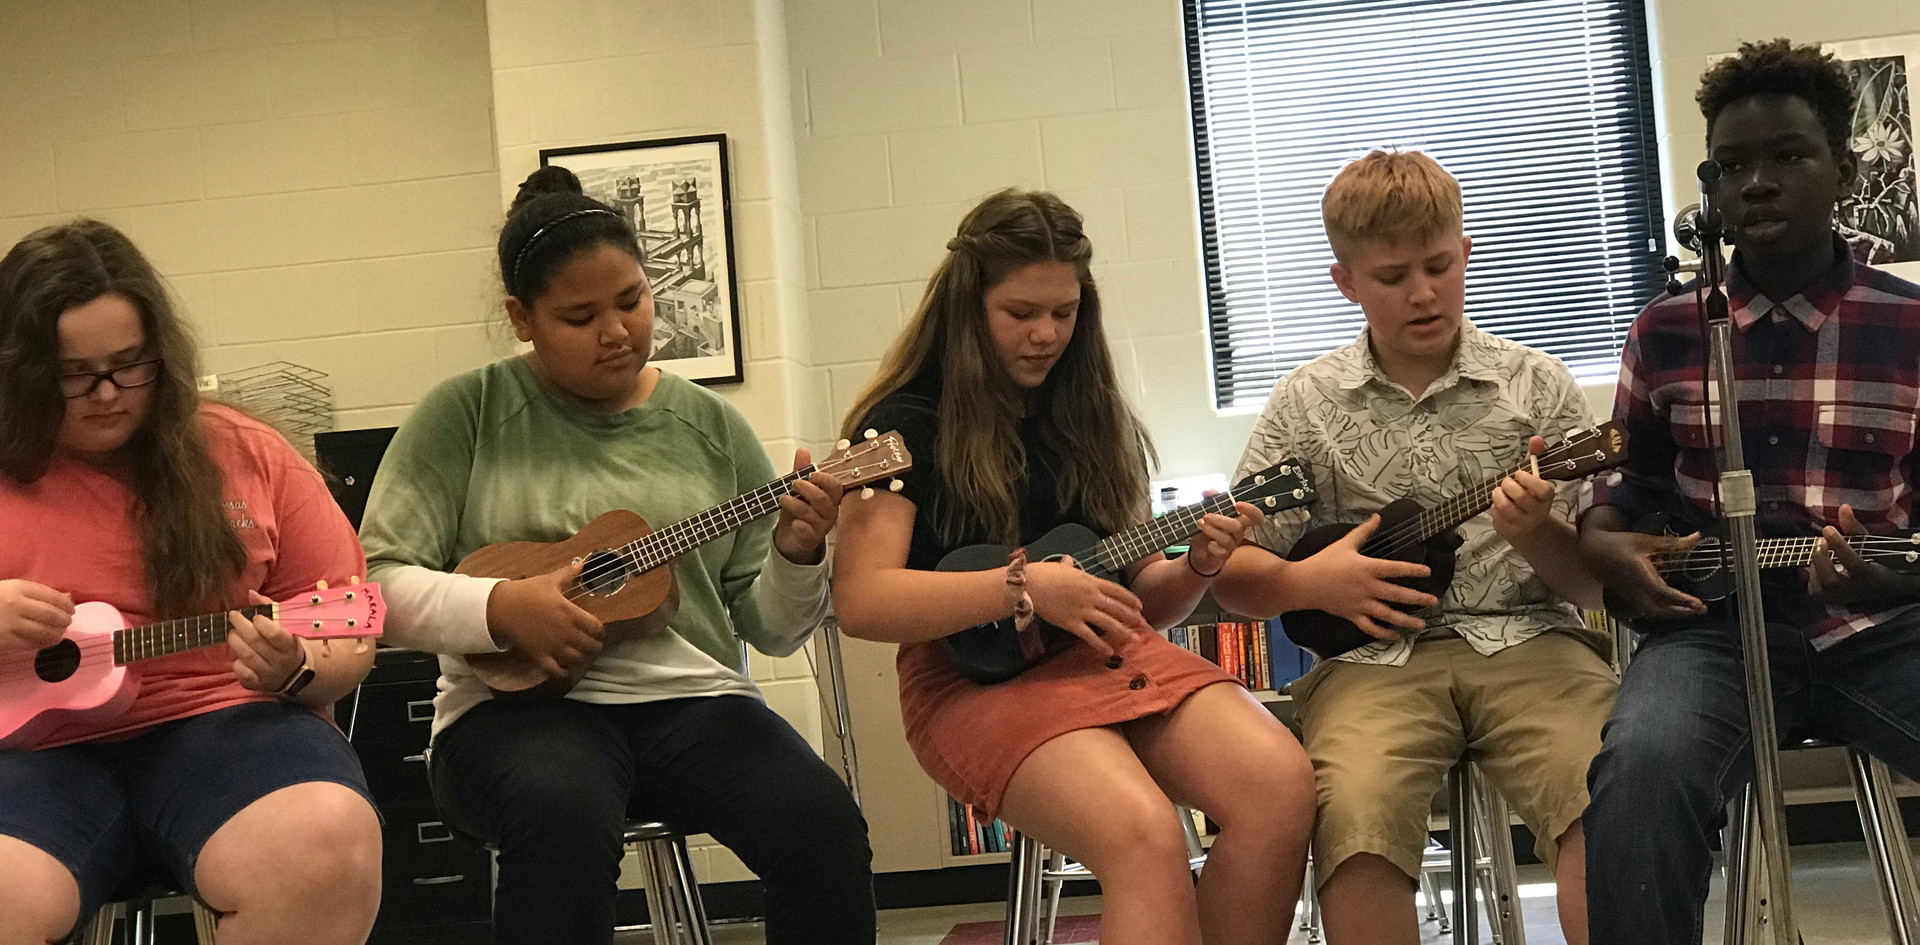 Old Town Road on the Ukulele